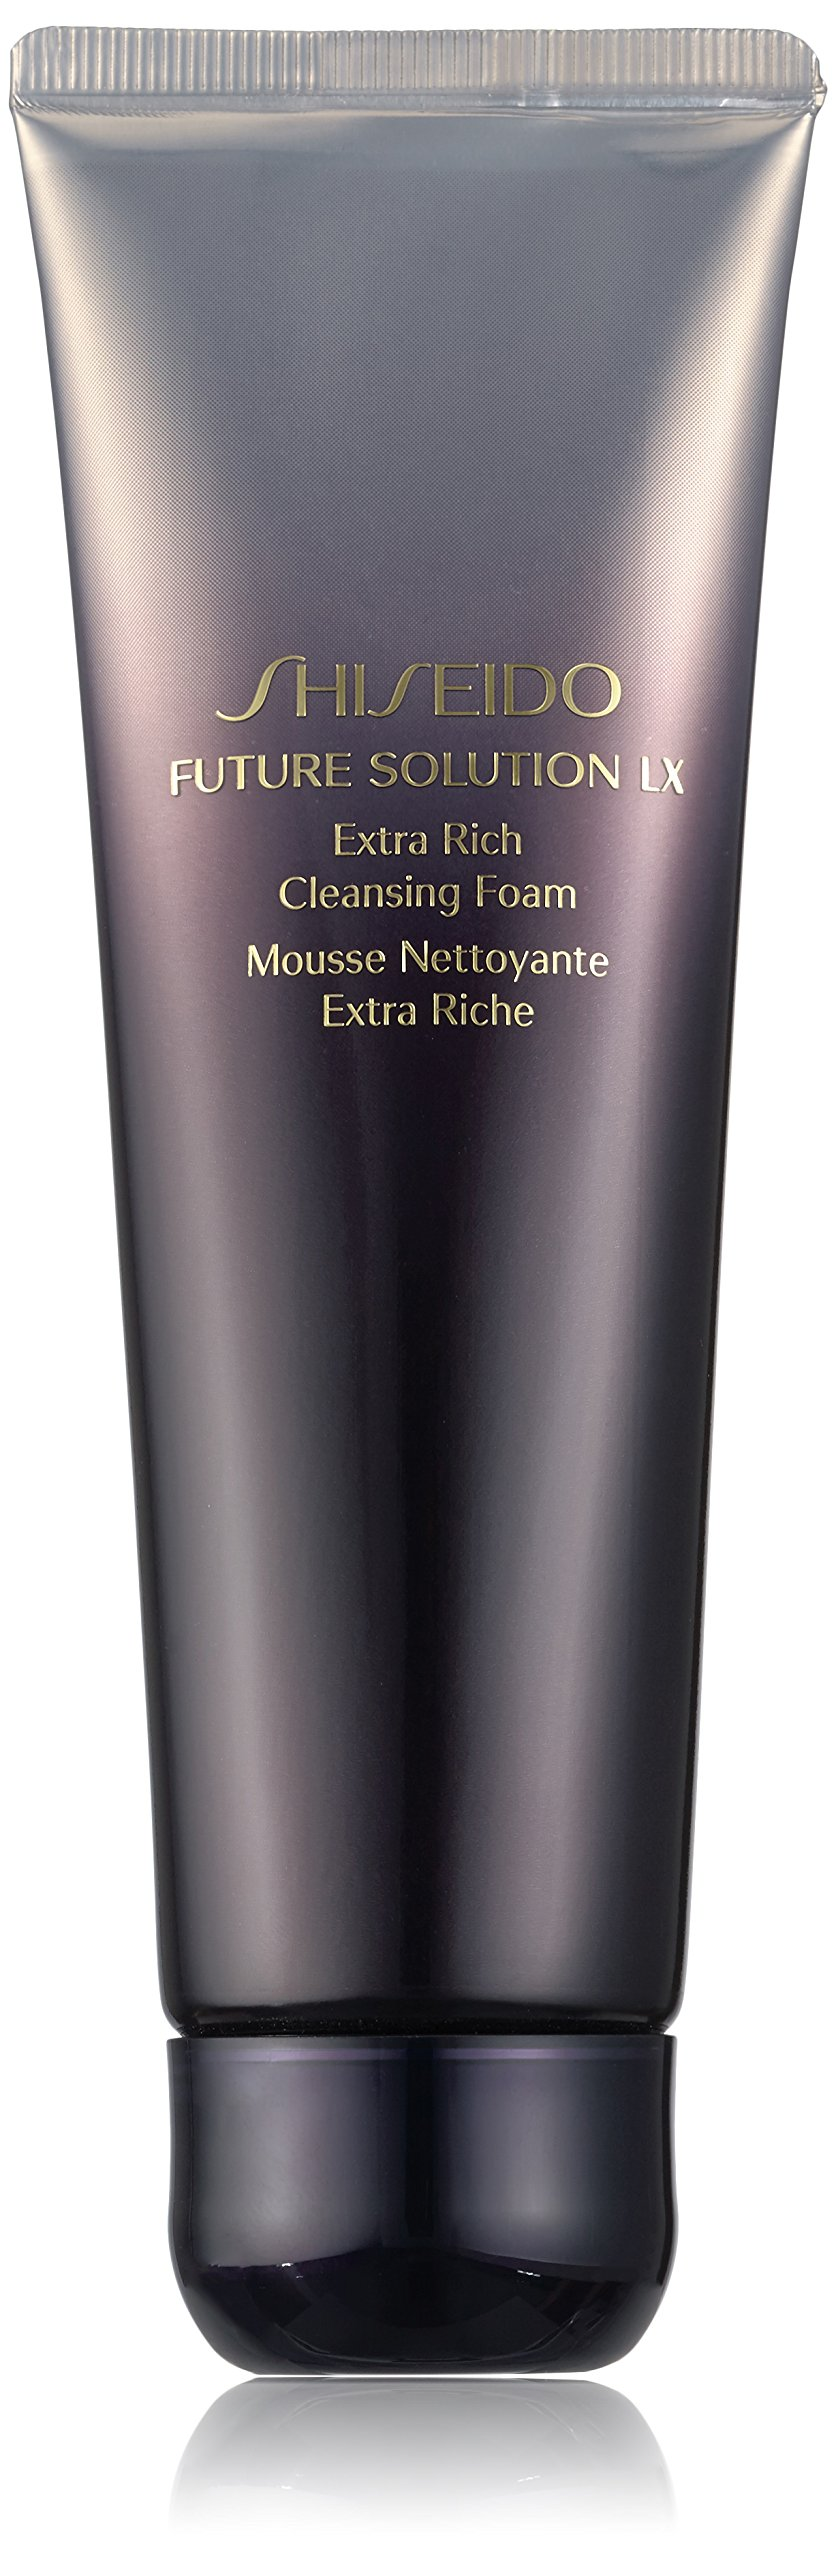 Shiseido Future Solution Lx Extra Rich Cleansing Foam for Unisex, 4.7 Ounce